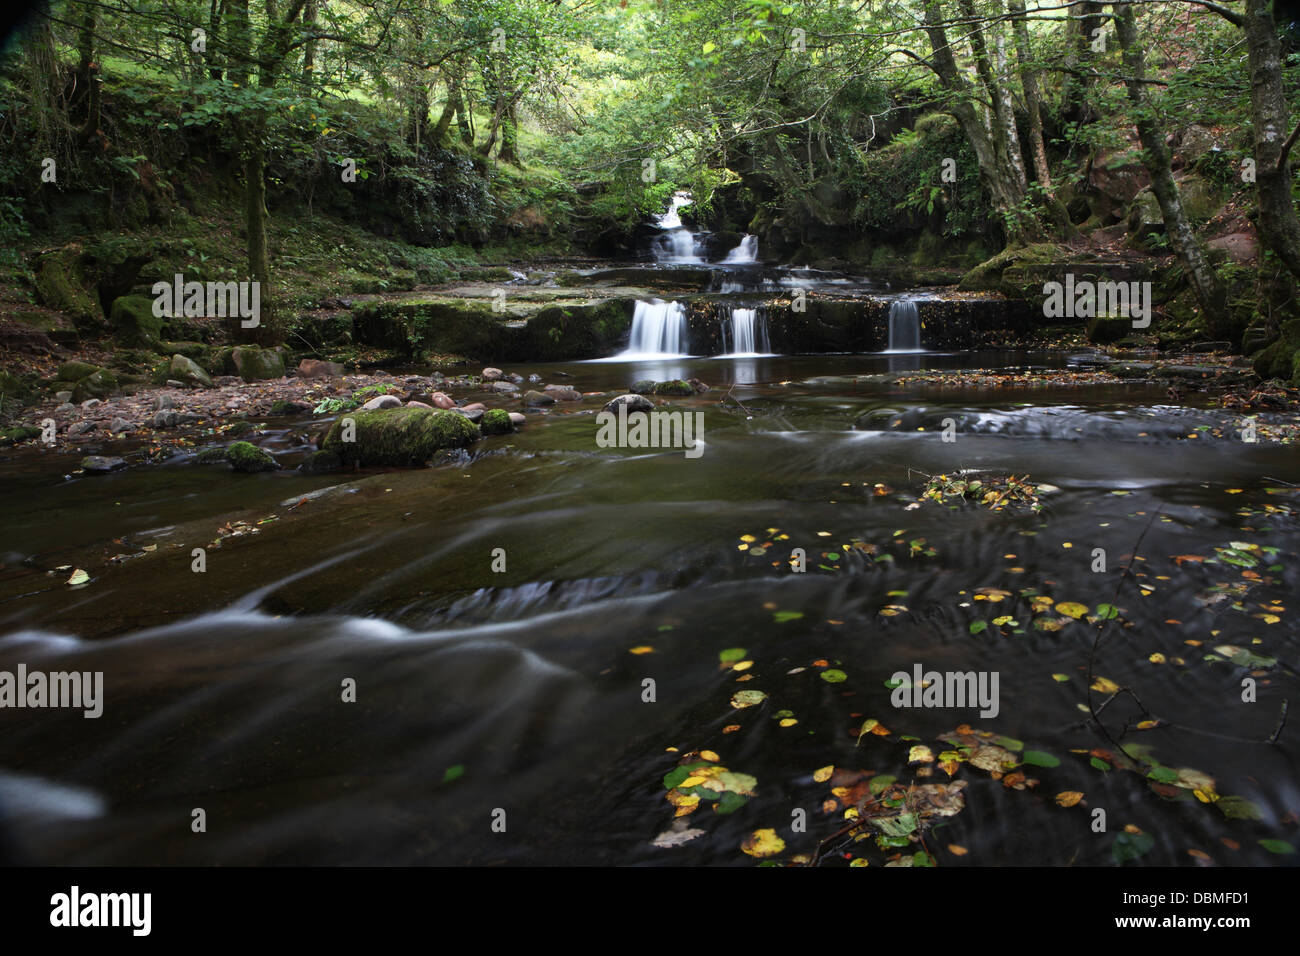 water flowing over rocks. River Erme nr Ivybridge Devon - Stock Image